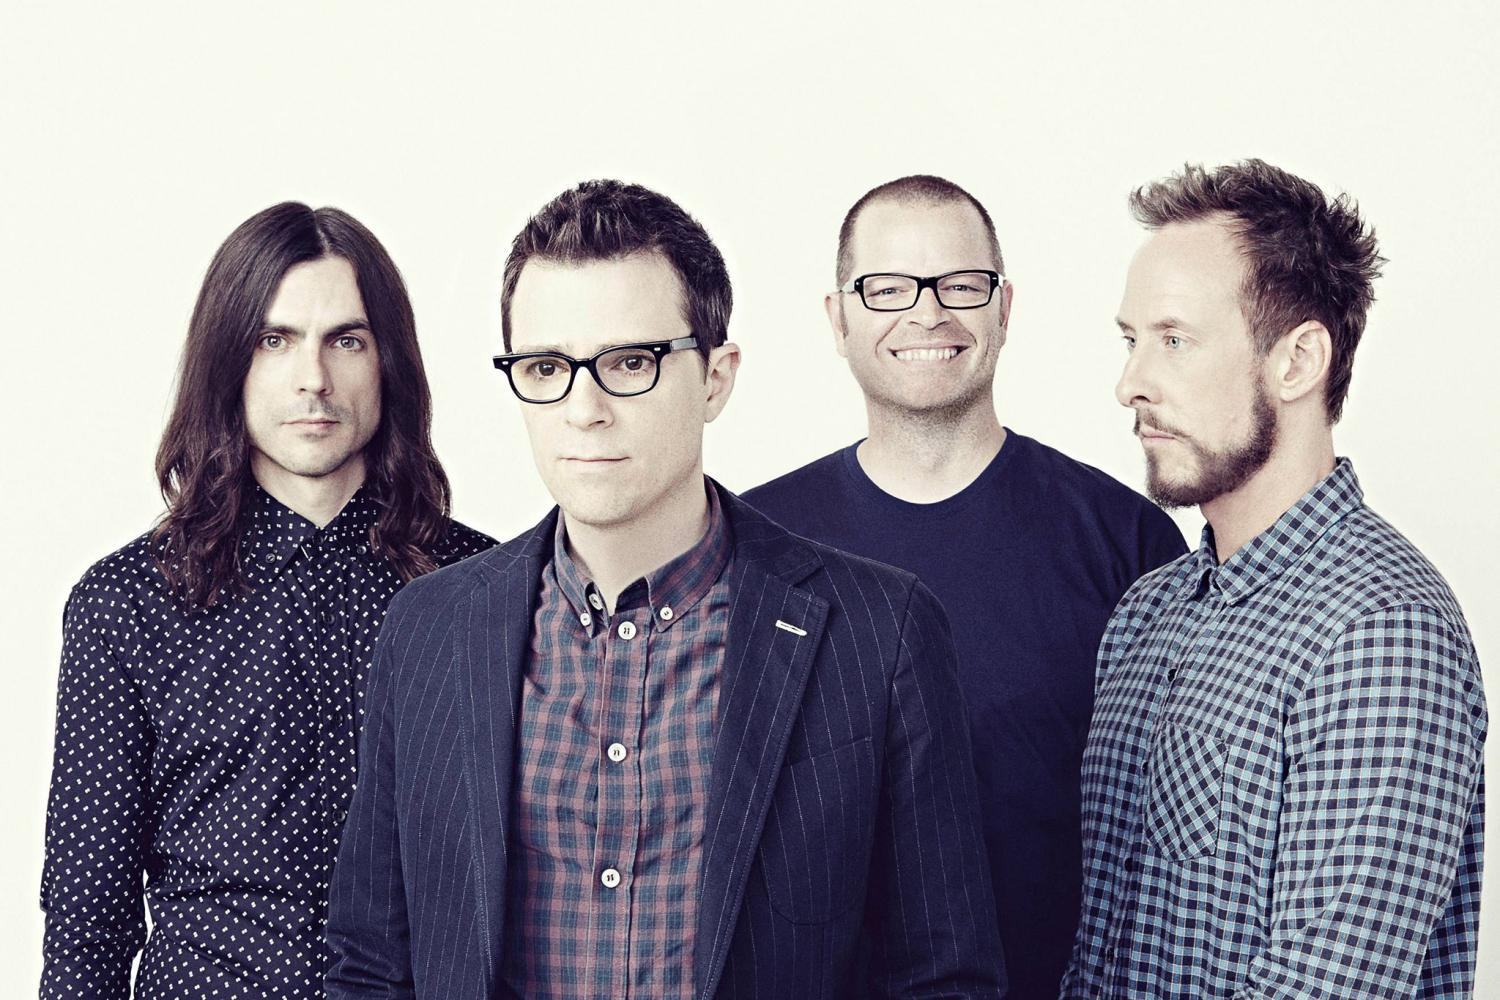 Details of New Weezer Album Accidentally Leaked